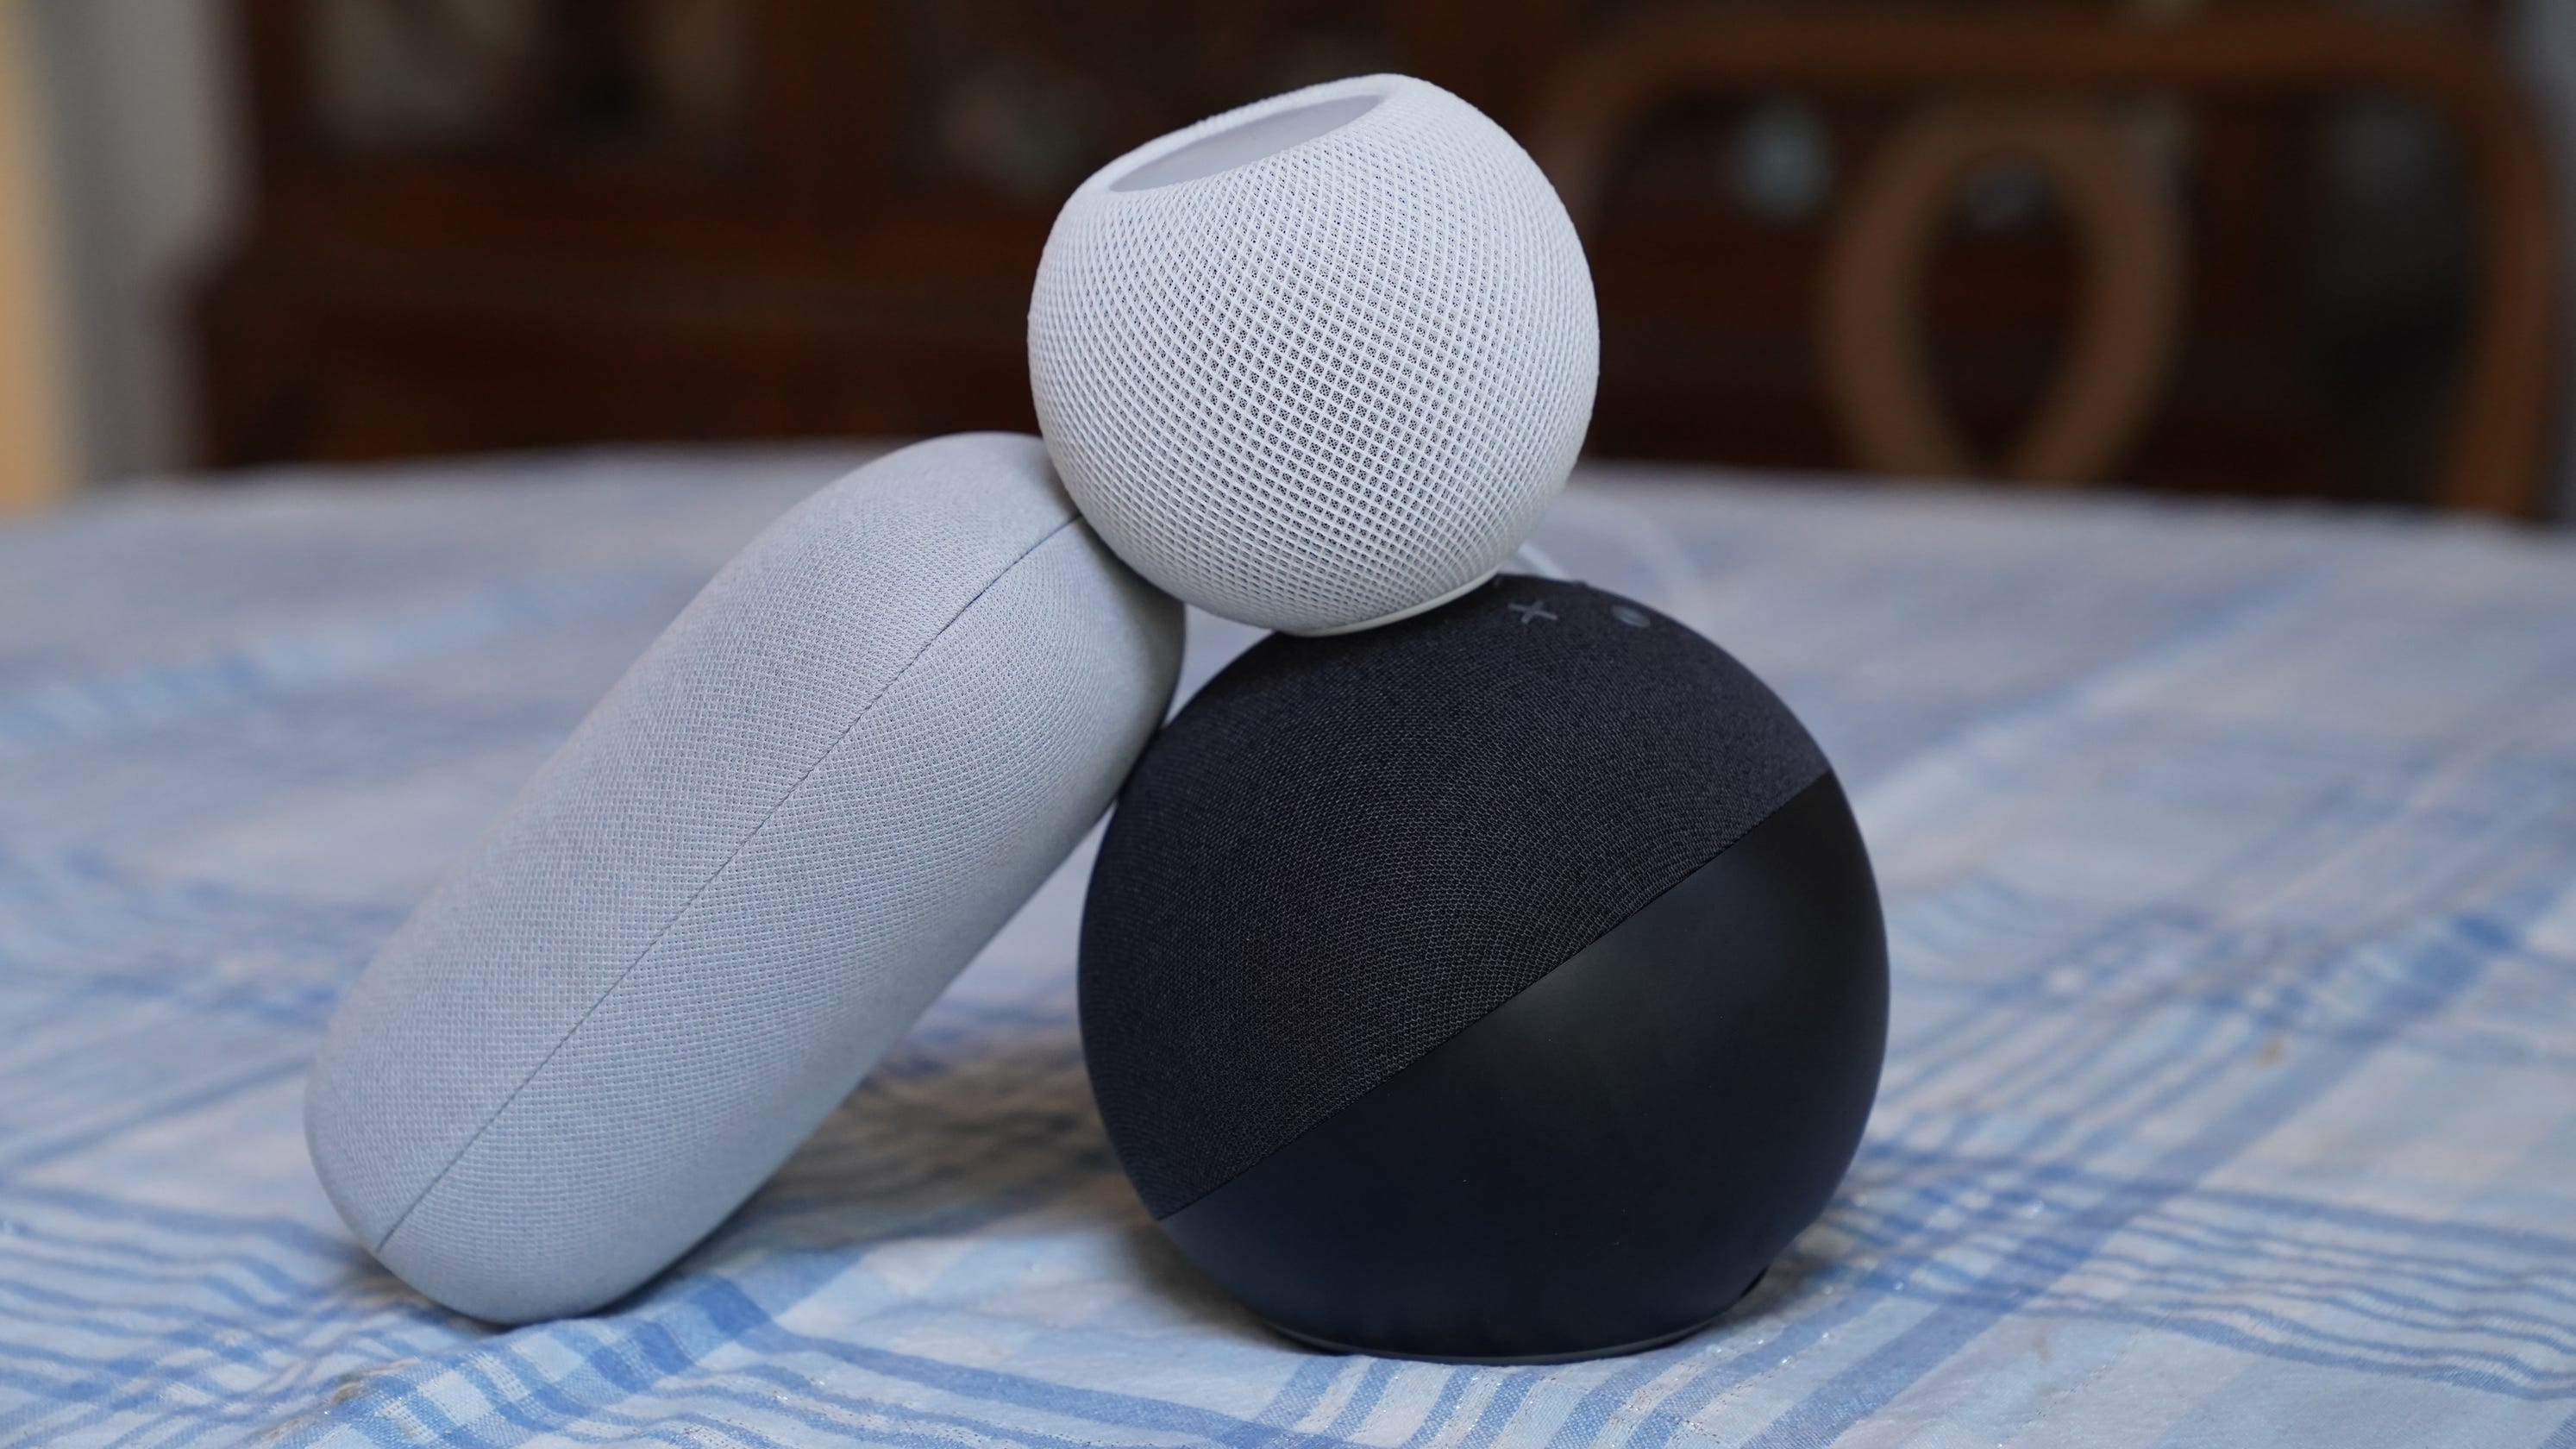 Apple's HomePod Mini review: Attractive price, more useful than Google speakers